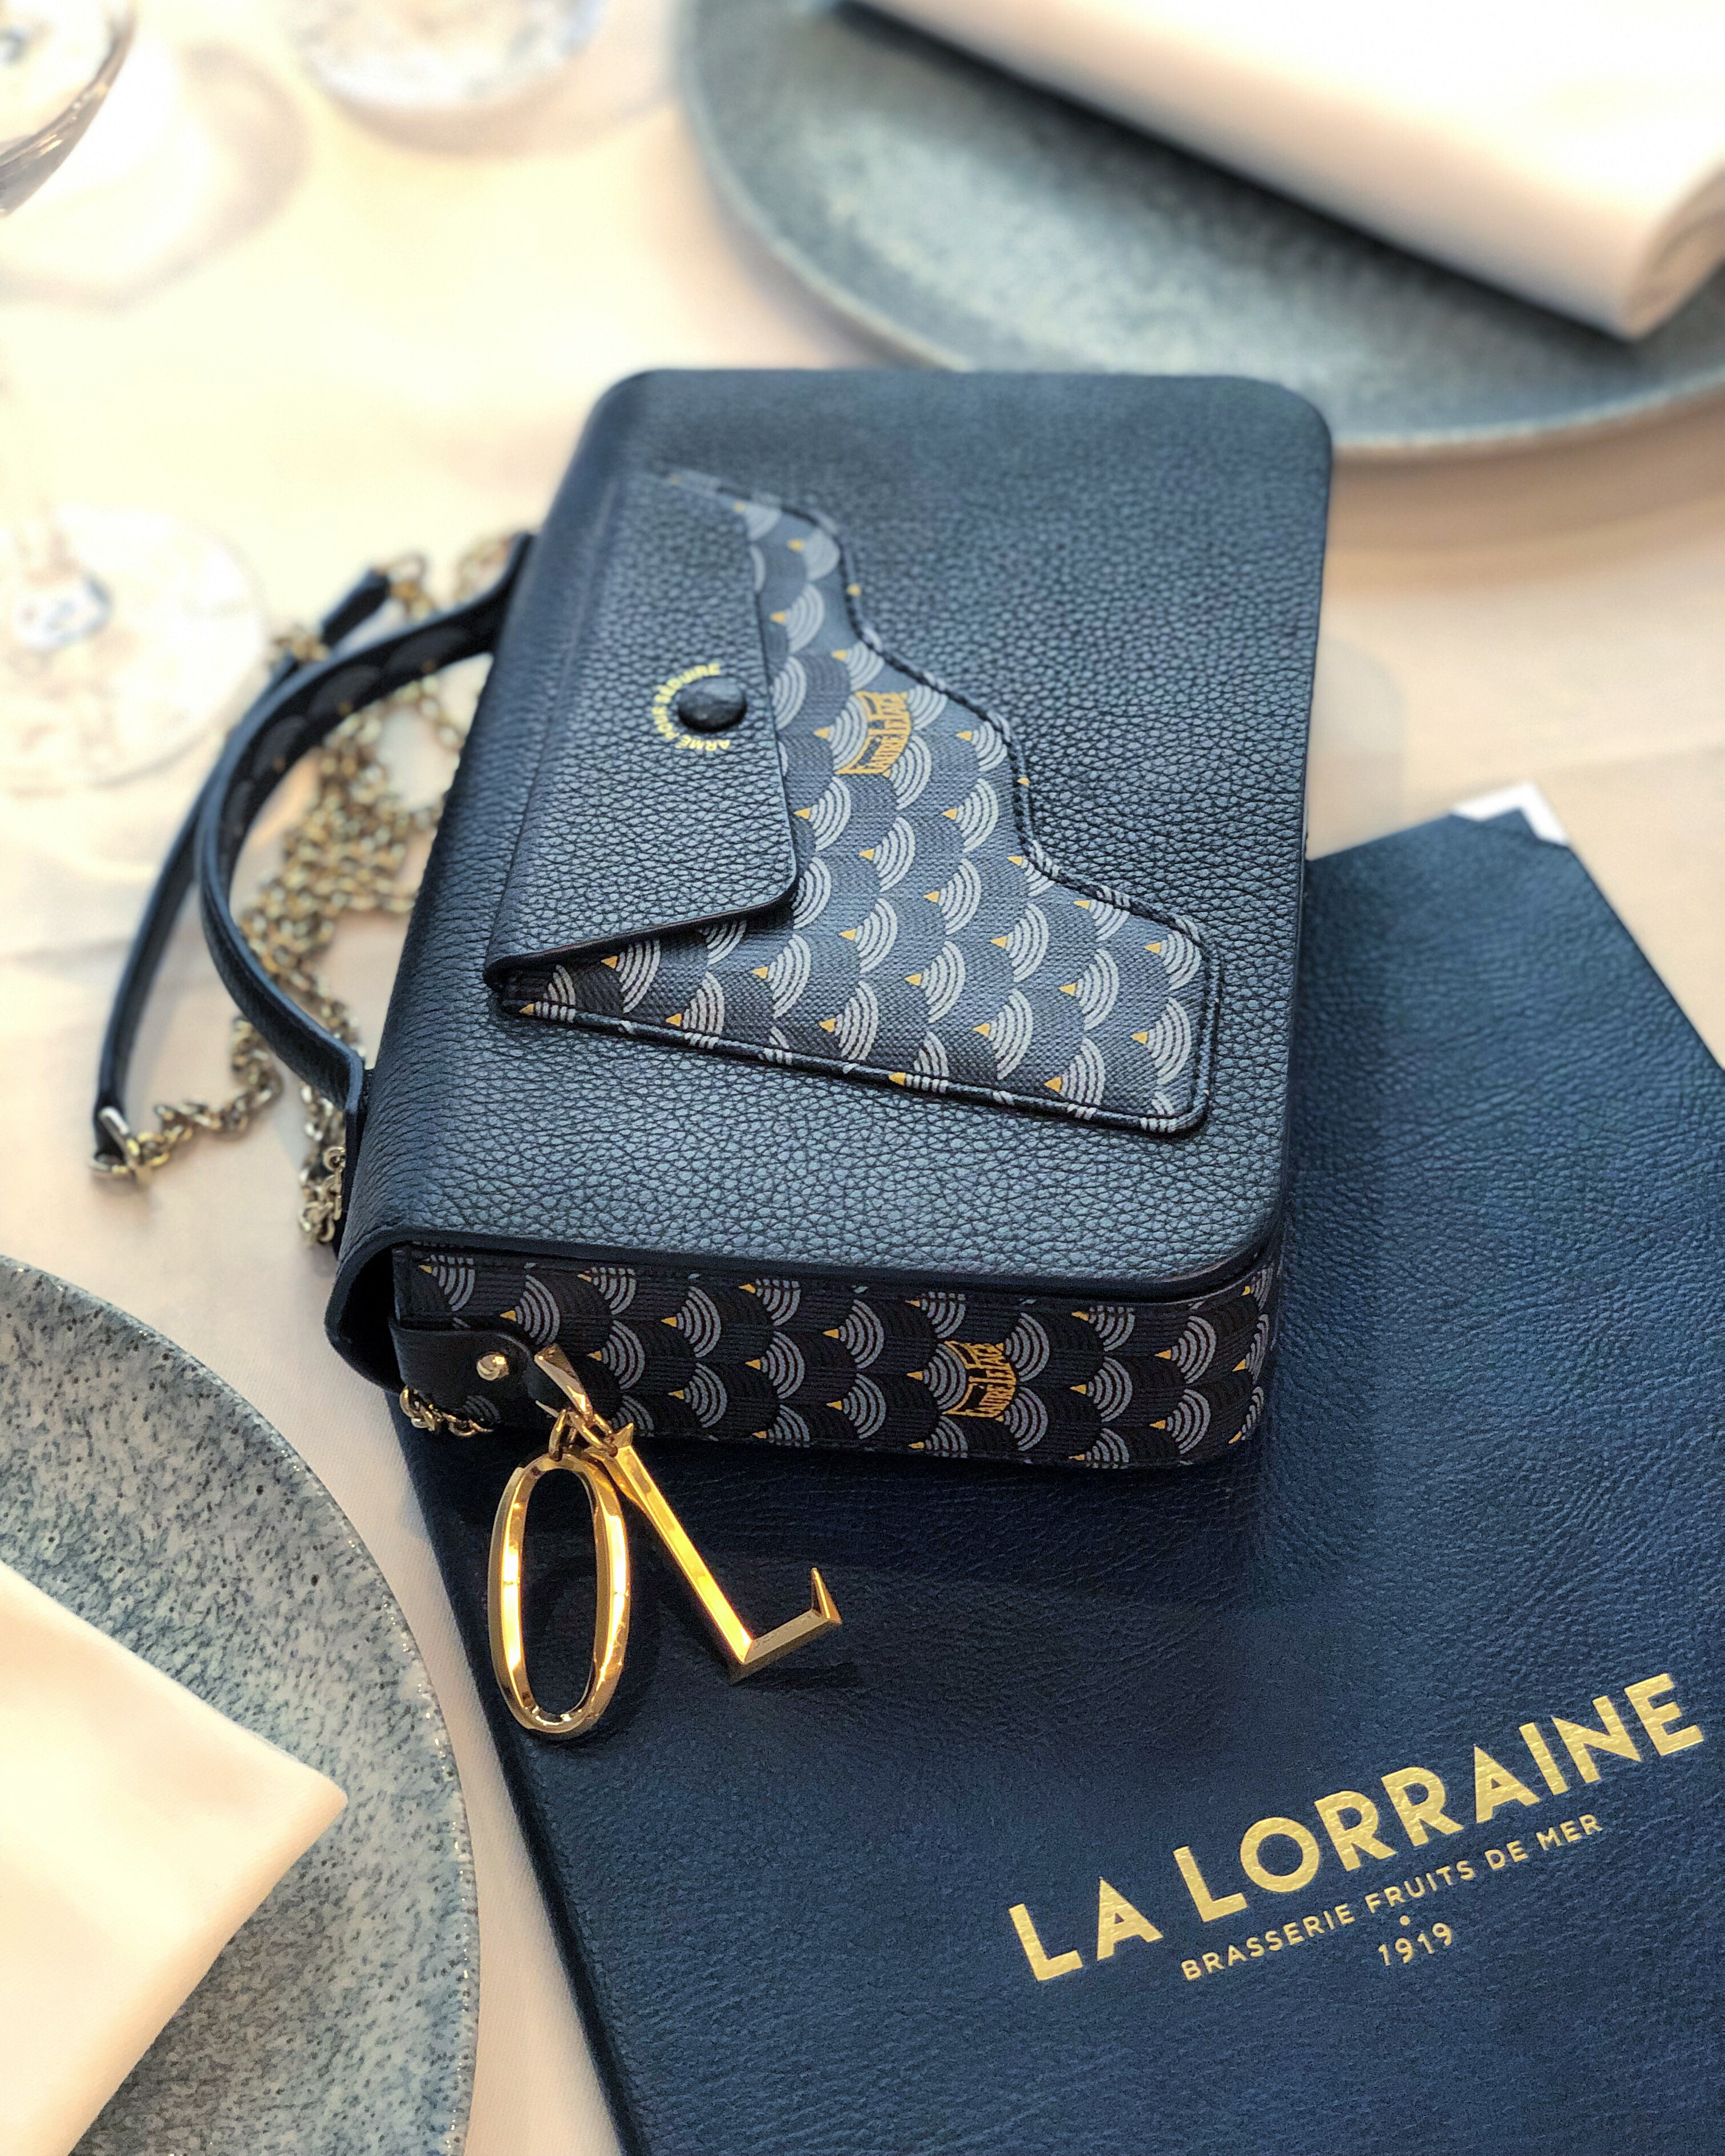 Fauré Le Page ; sac ; luxe ; maroquinerie ; fashion ; sac luxe